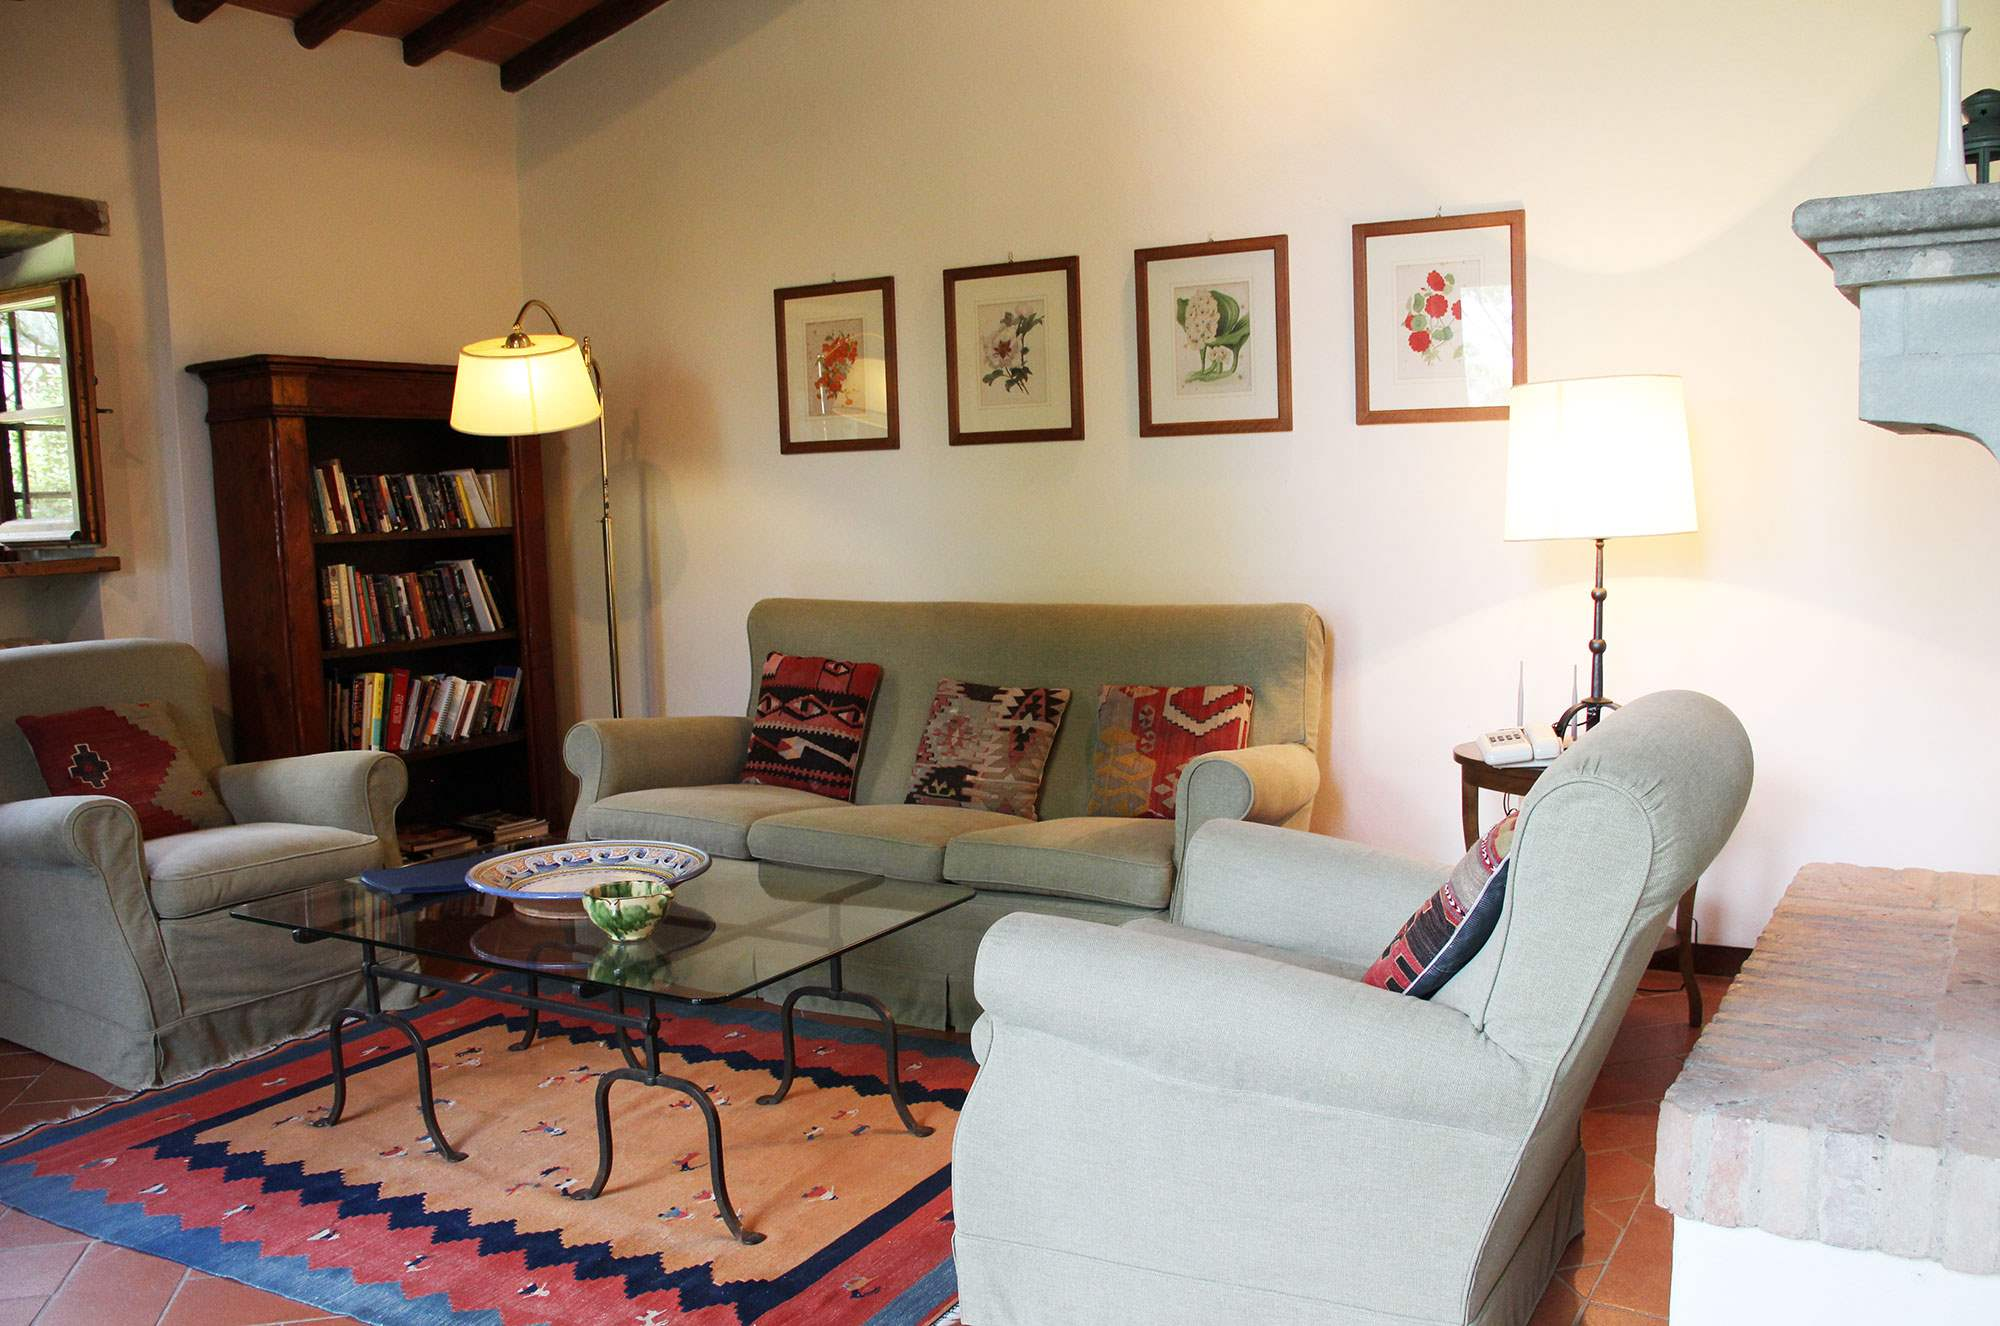 Casas Ferruzzi, 8 bedroom apartment in Chianti & Countryside, Tuscany Photo #5